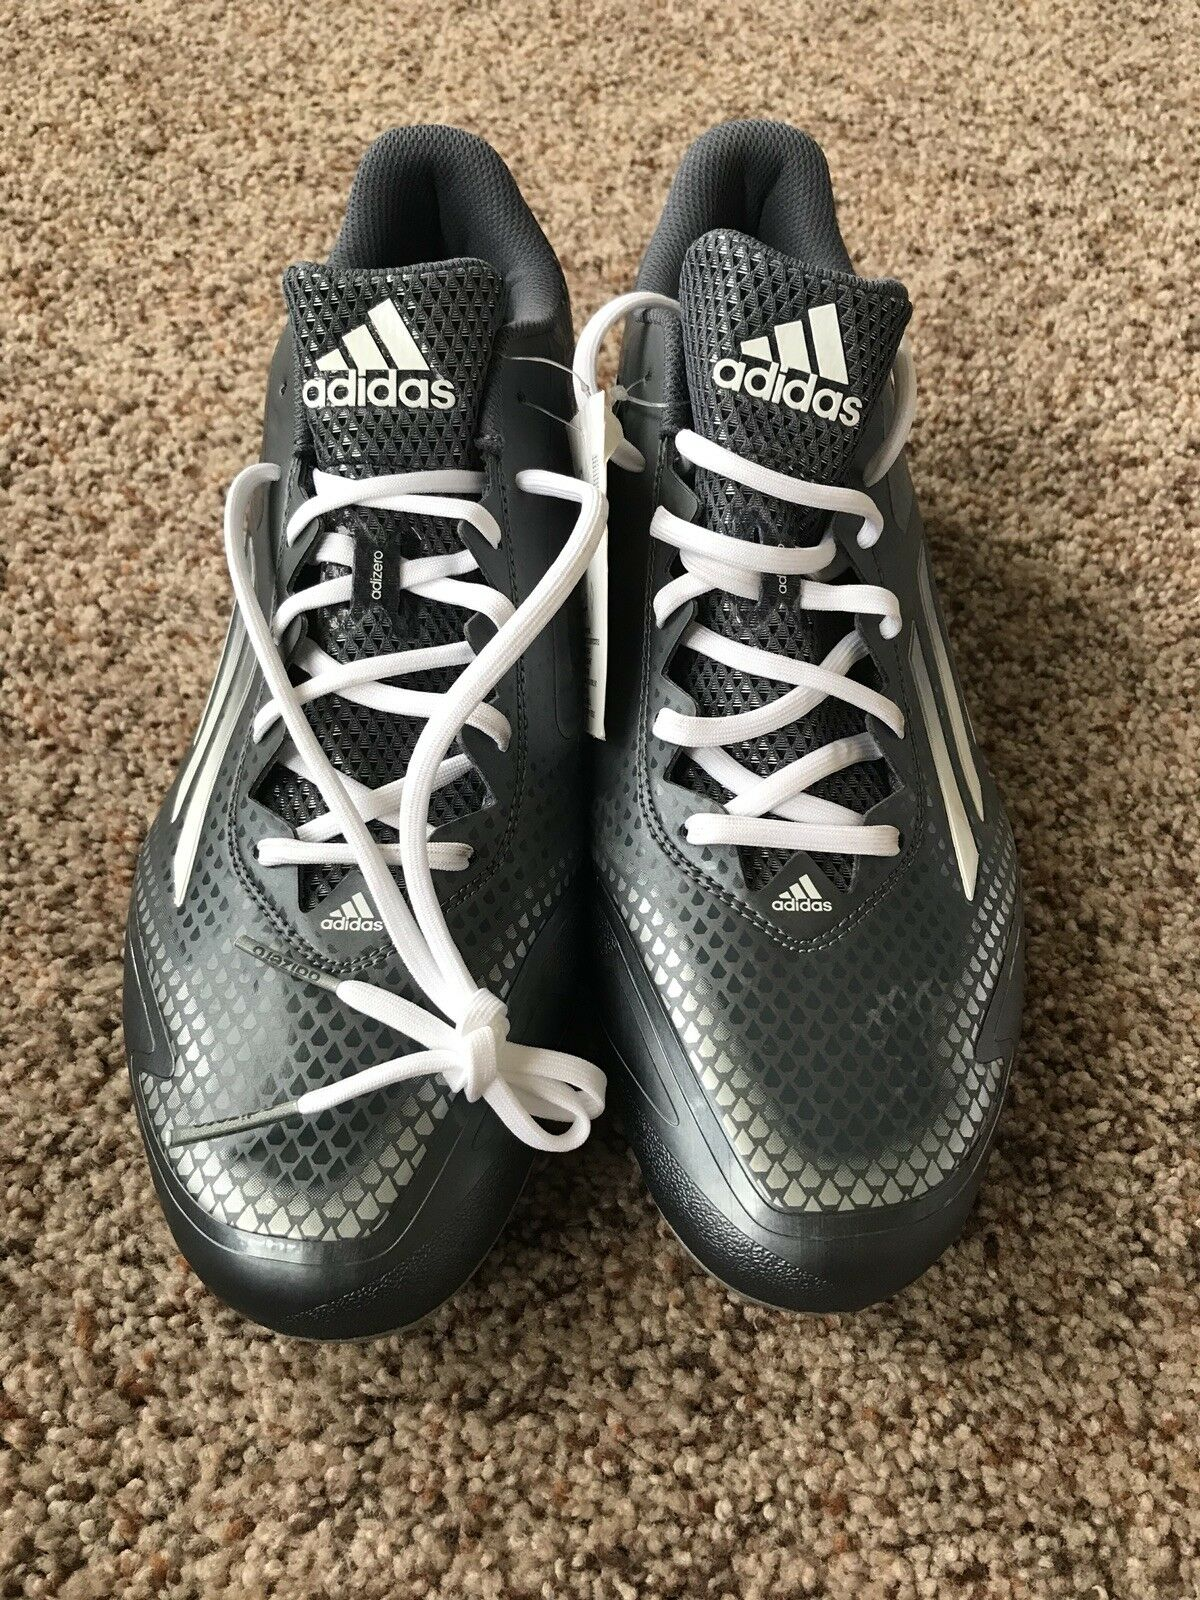 ~Adidas Men's Adizero Afterburner 2.0 Price reduction The most popular shoes for men and women